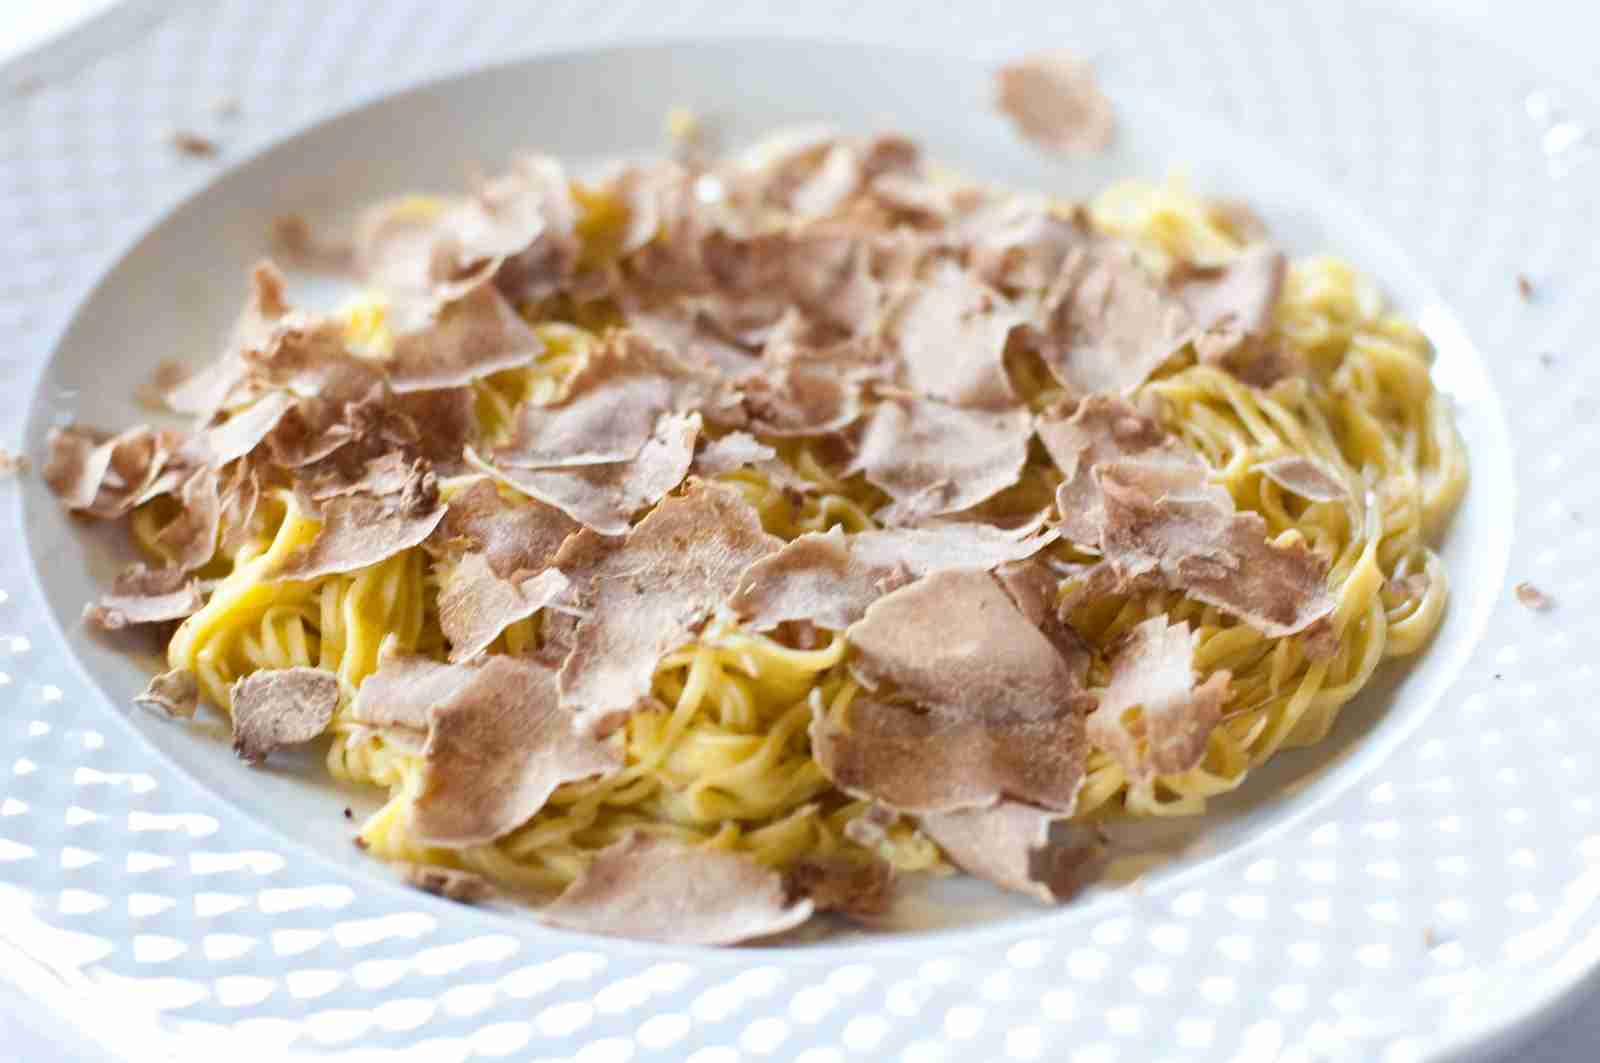 Truffle Tajarin. (Photo by giovanni1232/Getty Images)